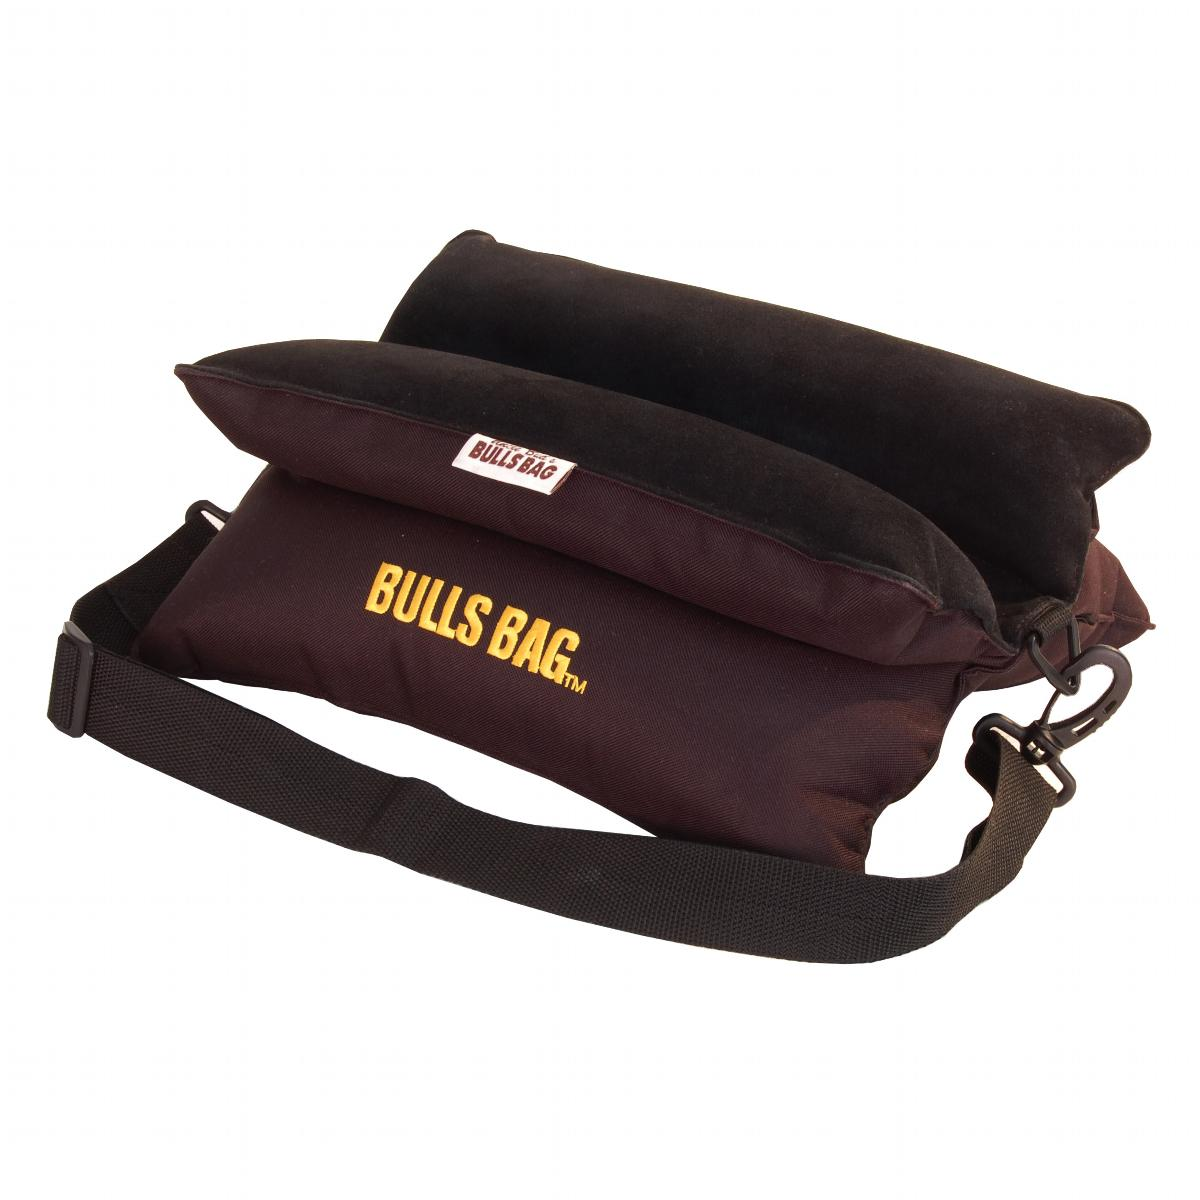 Bulls Bag/Uncle Buds Bench Rest with Carry Strap, Black ...